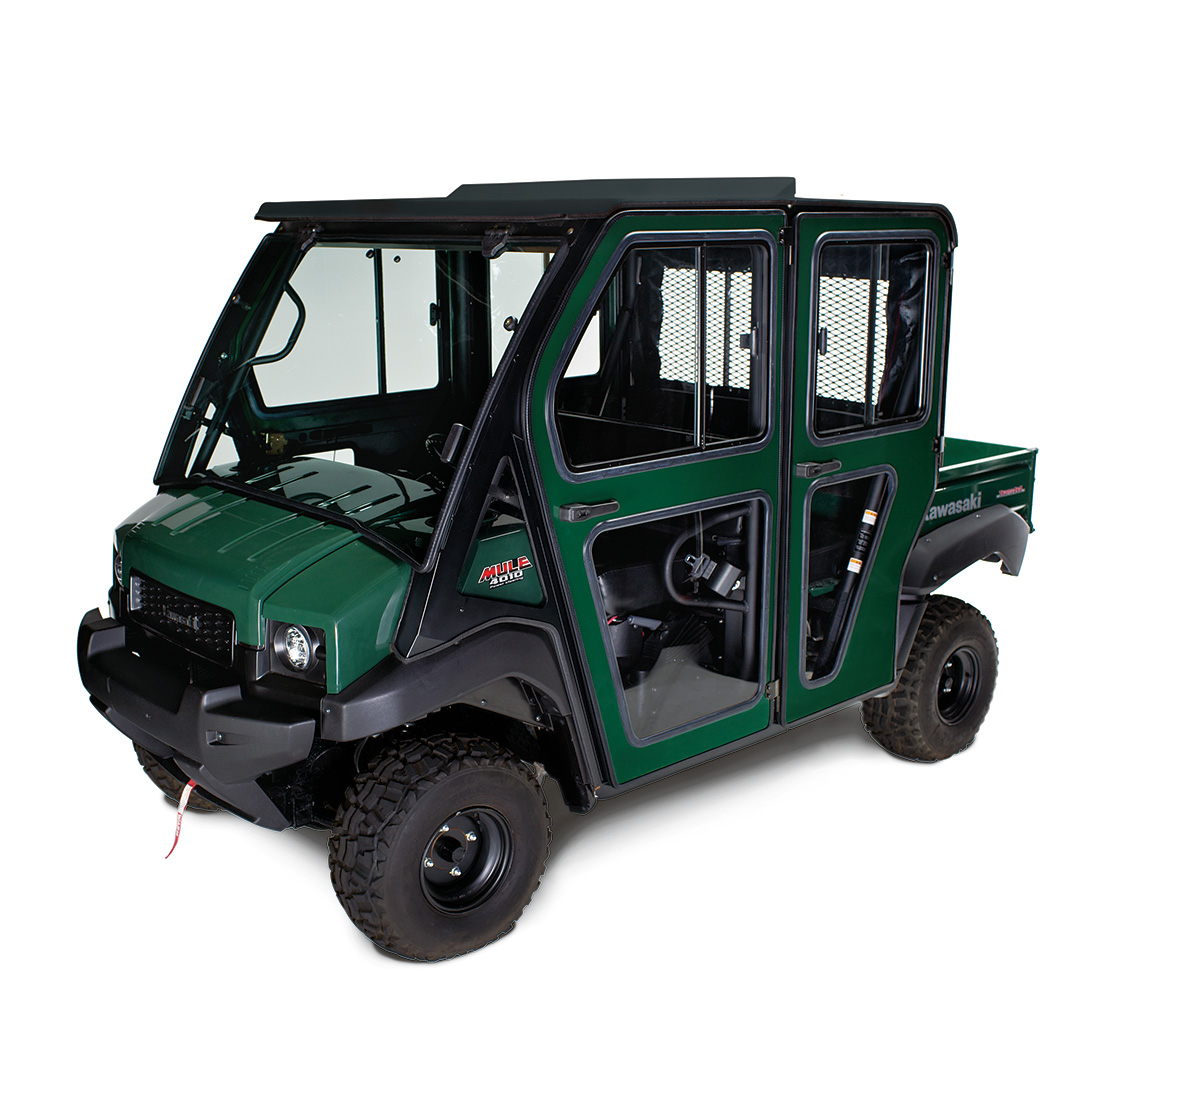 Mule 4010 Wiring Diagram | Wiring Liry Kawasaki Mule Wiring Diagram on